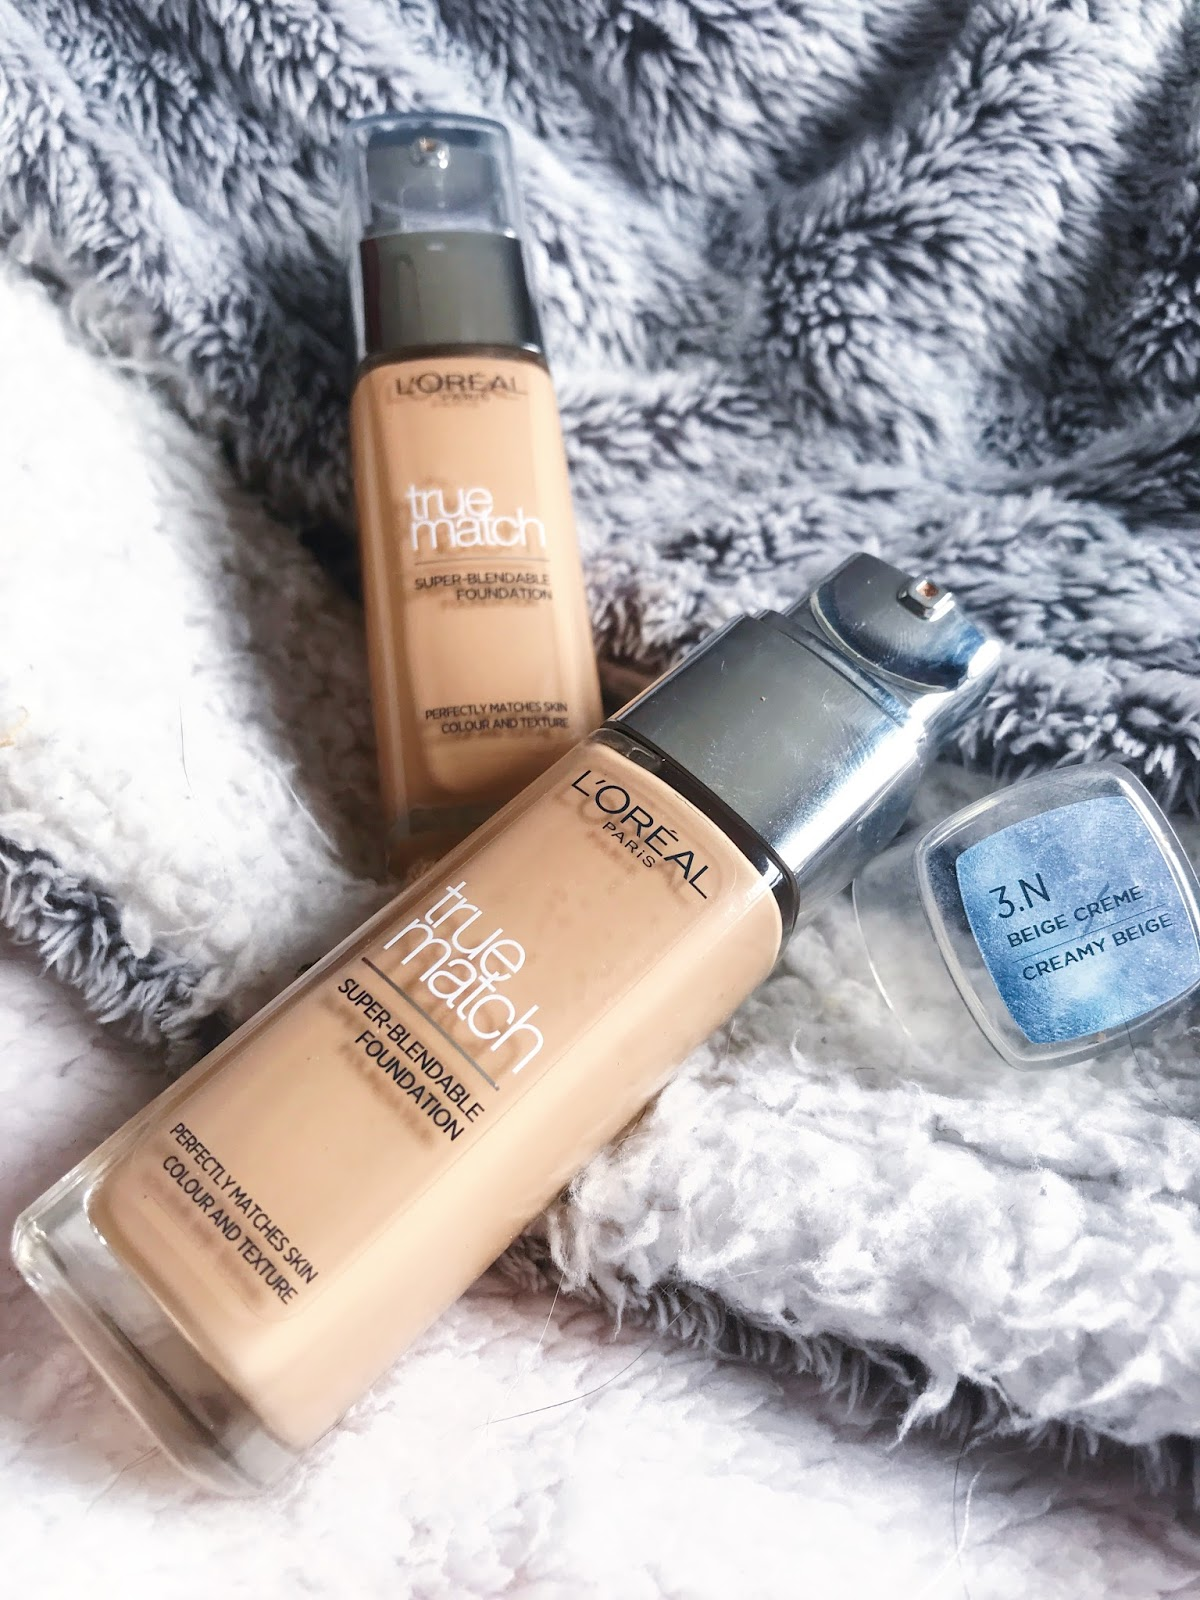 The Best Drugstore Foundation on the Market